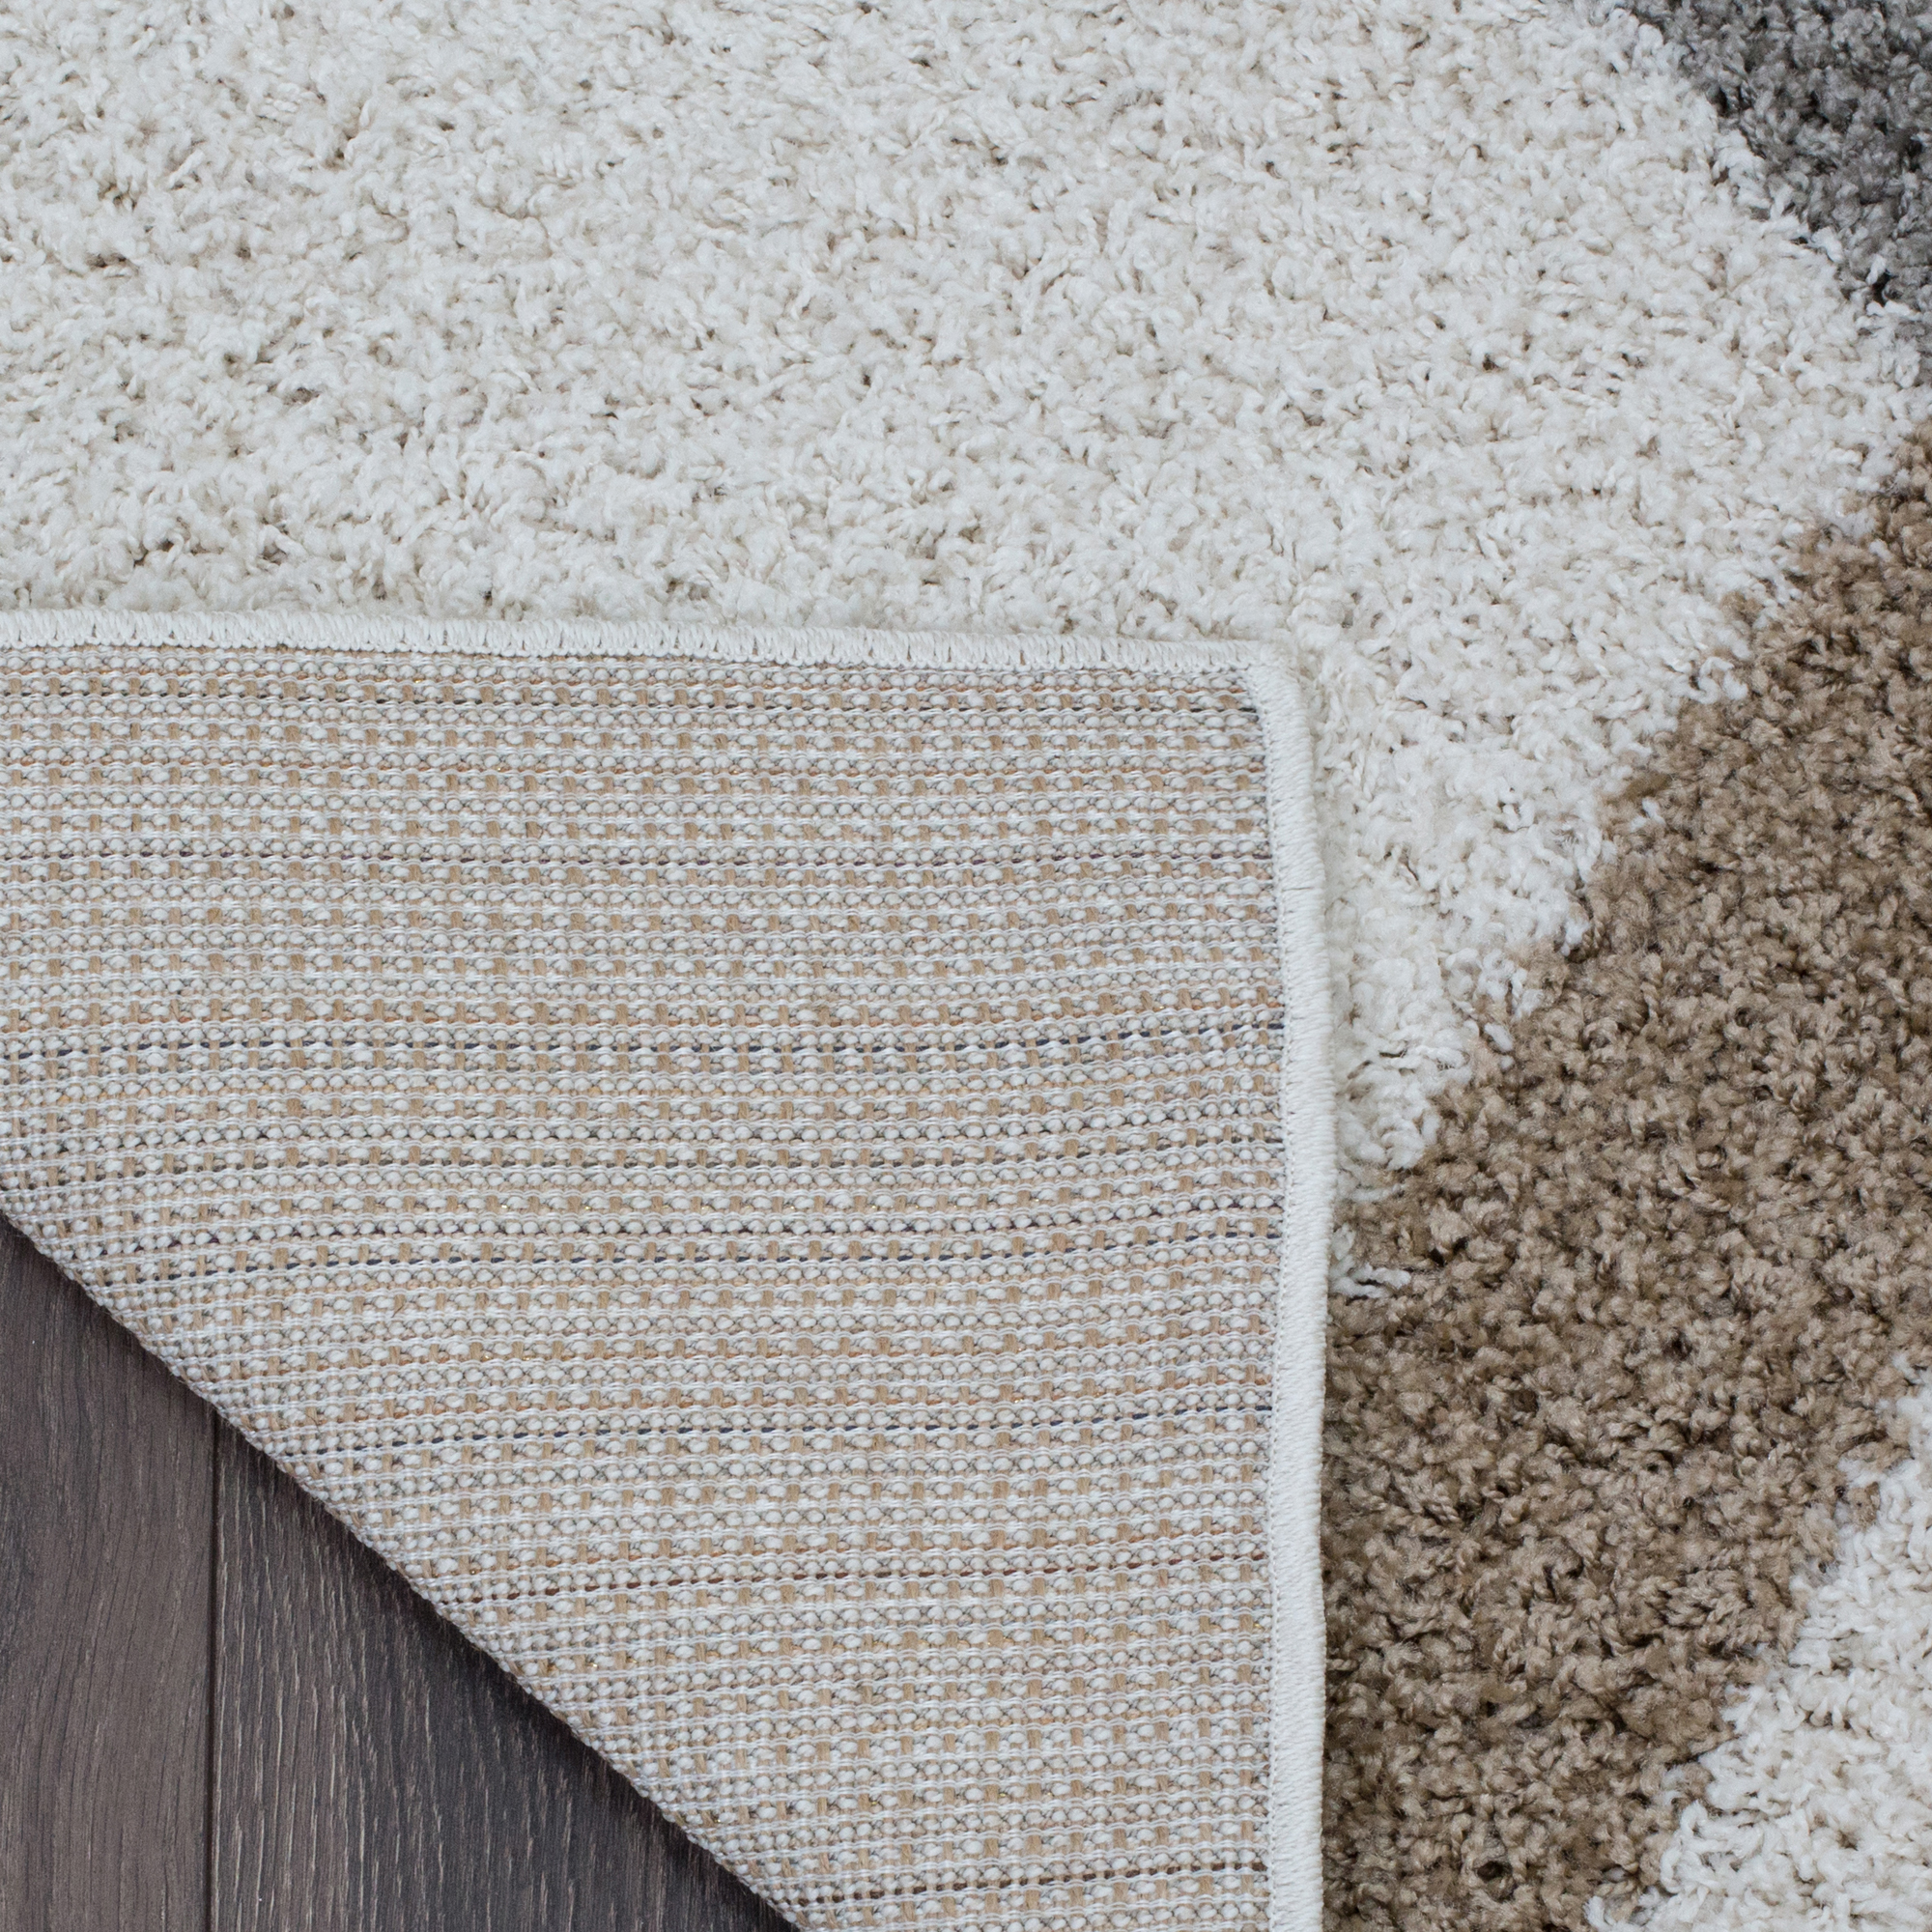 Ikea Off White Rug Ebay: Shag Rugs Modern Area Rug Contemporary Abstract Or Solid